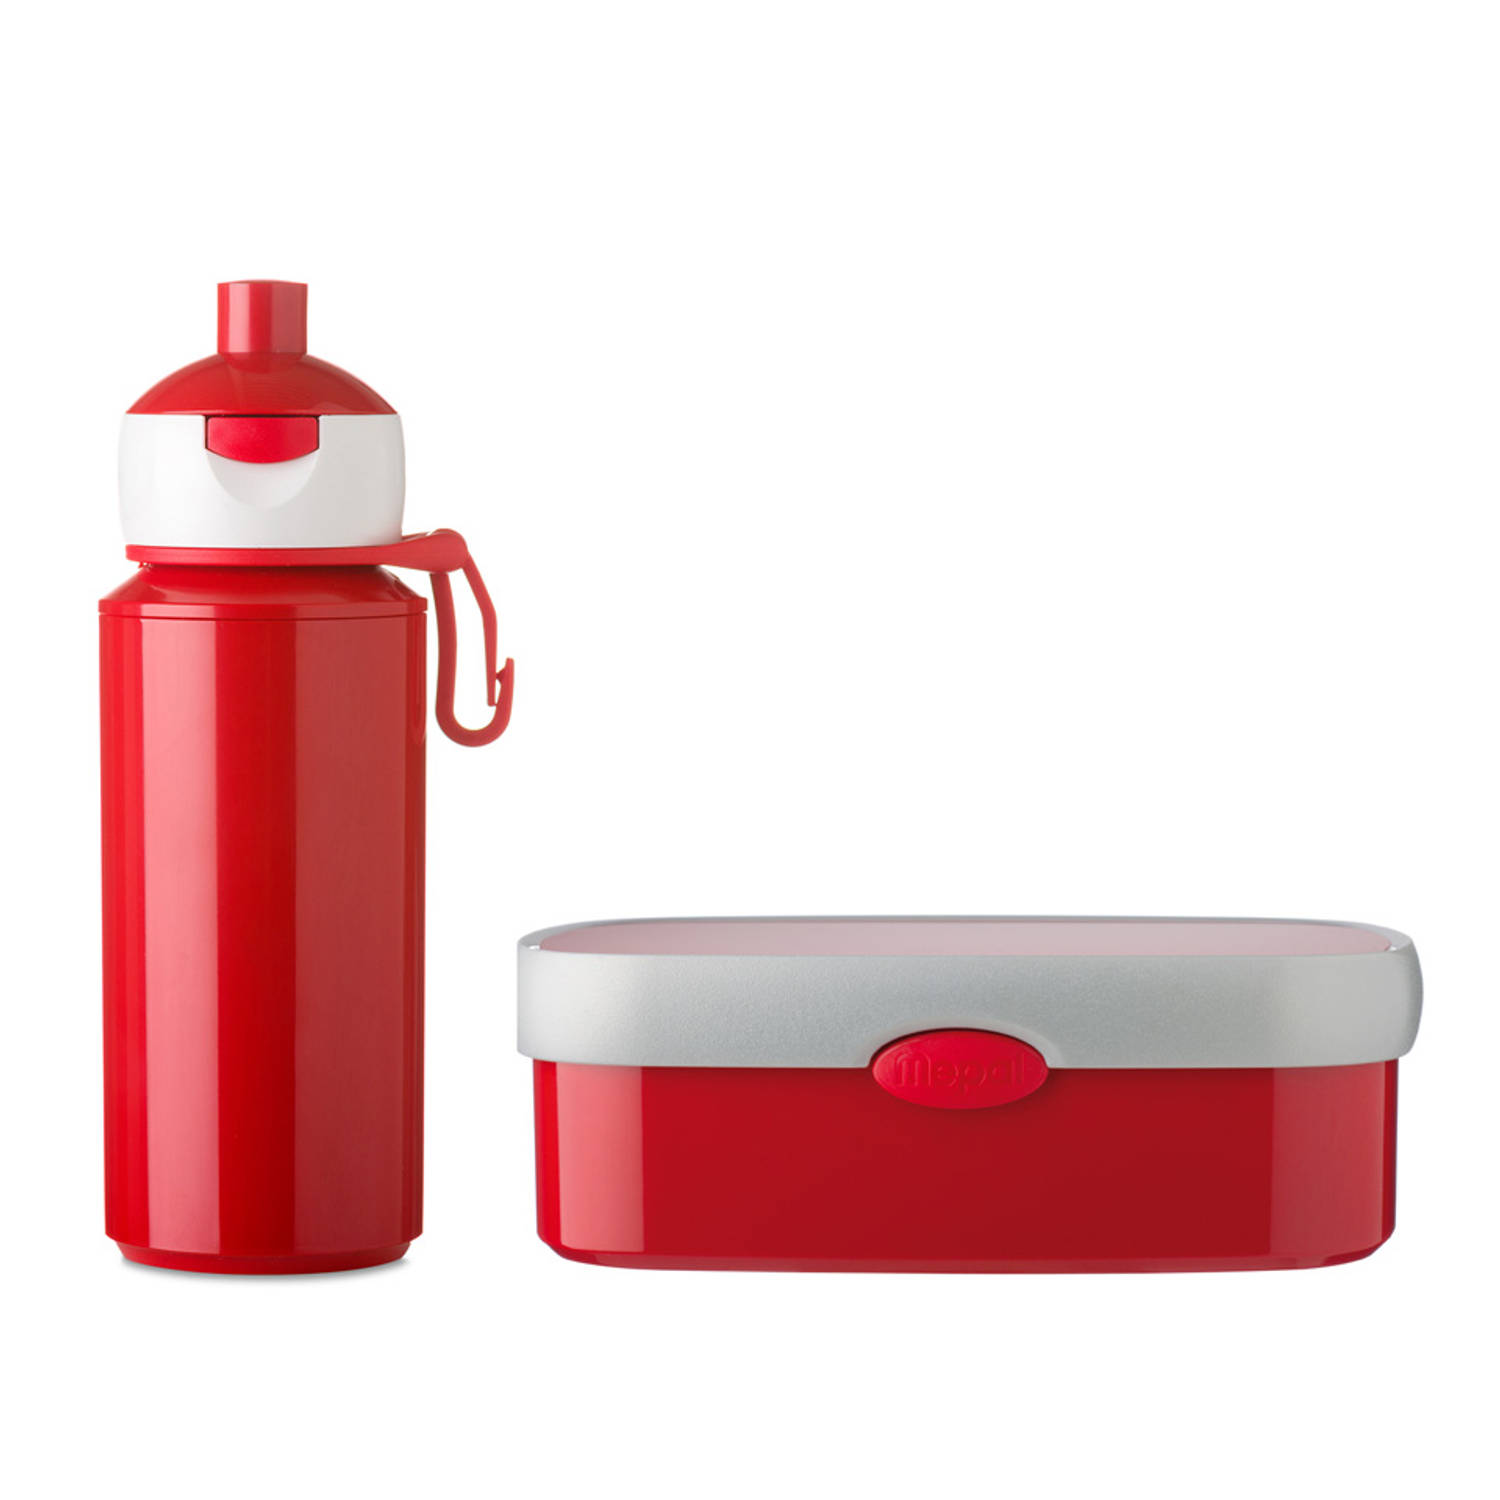 Rosti Mepal Campus pauzeset pop-up beker & lunchbox - rood